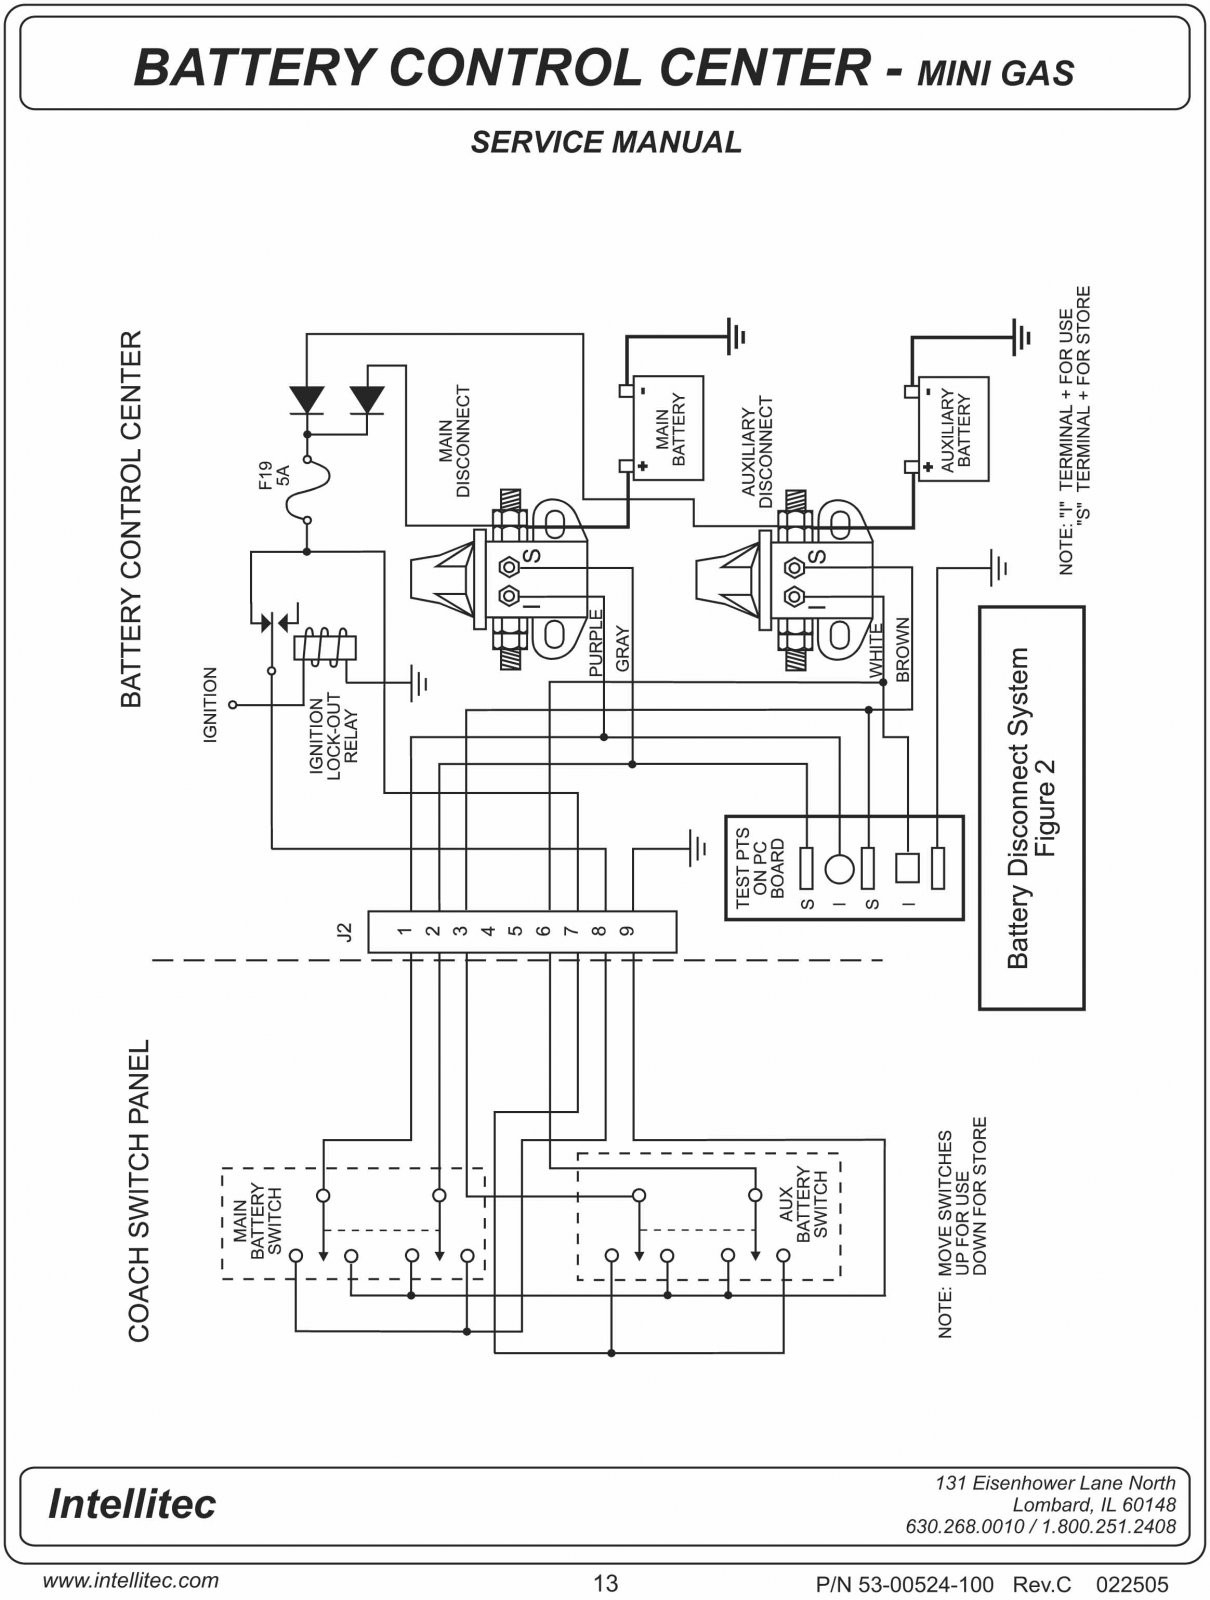 kwikee electric step wiring diagram Collection-Wiring Diagram For Rv Steps New Kwikee Electric Step Wiring Diagram Hd Dump 9-t